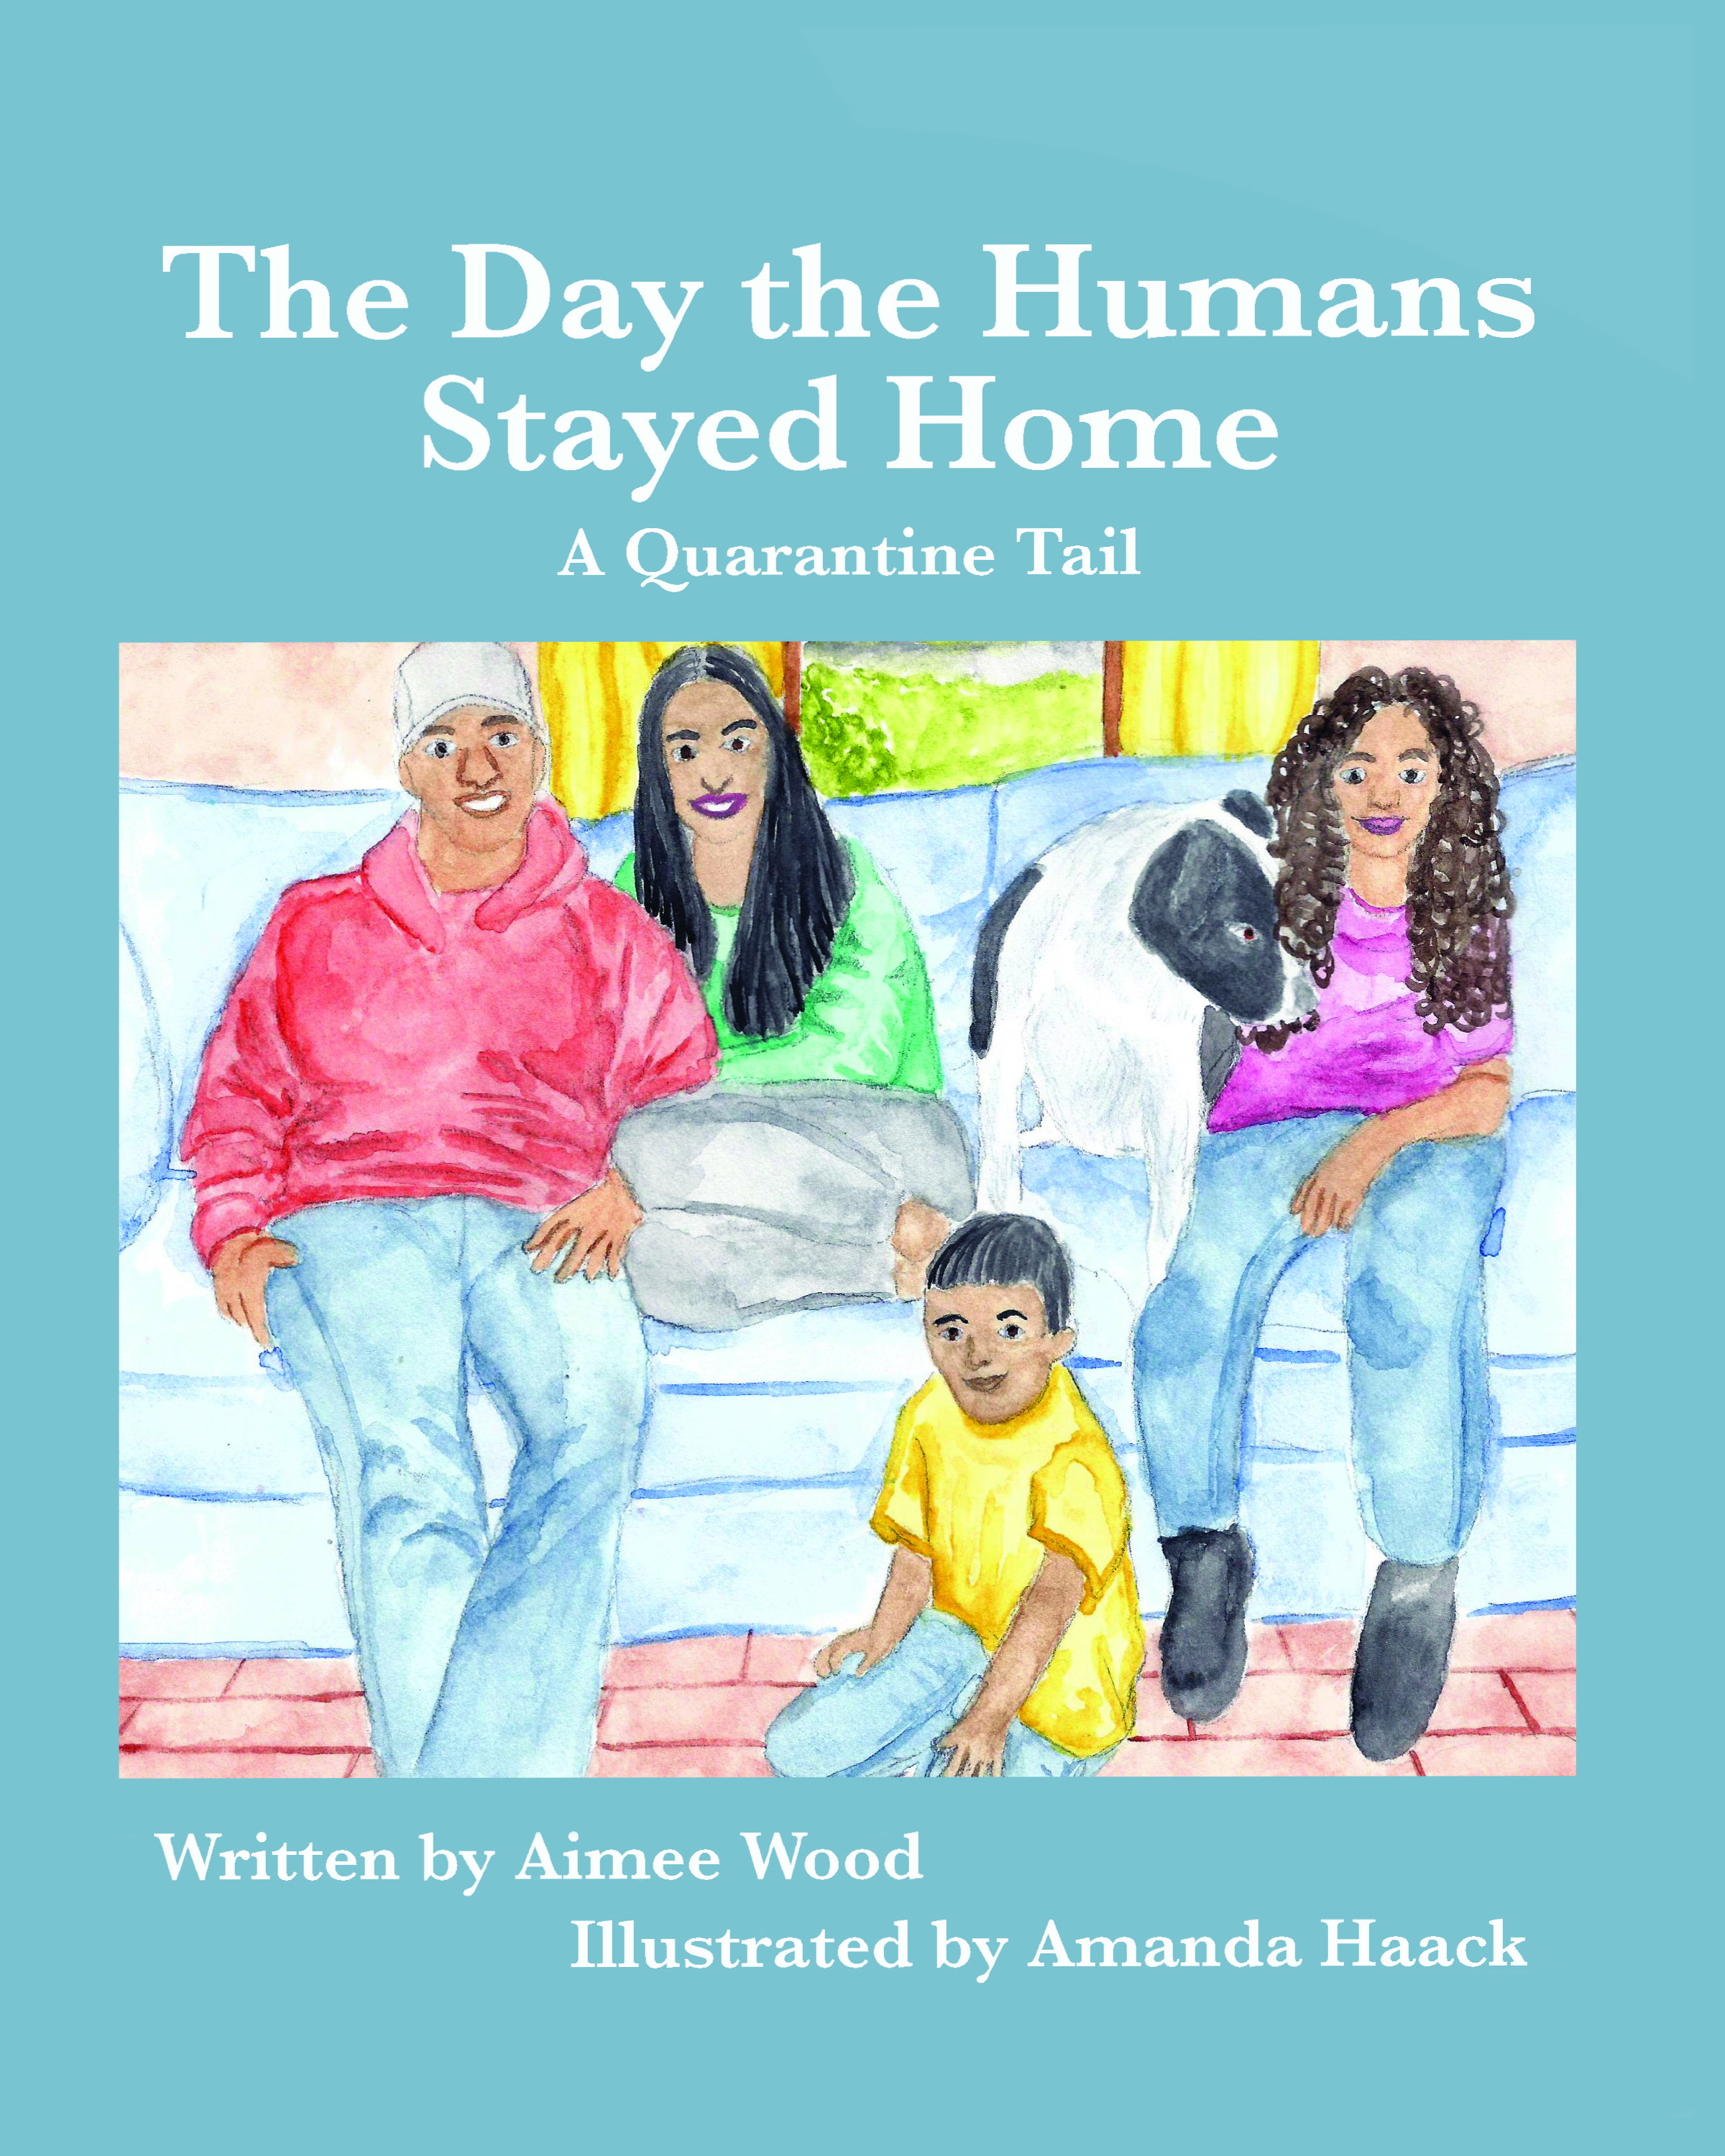 The Day The Humans Stay Home: A Quarantine Tail